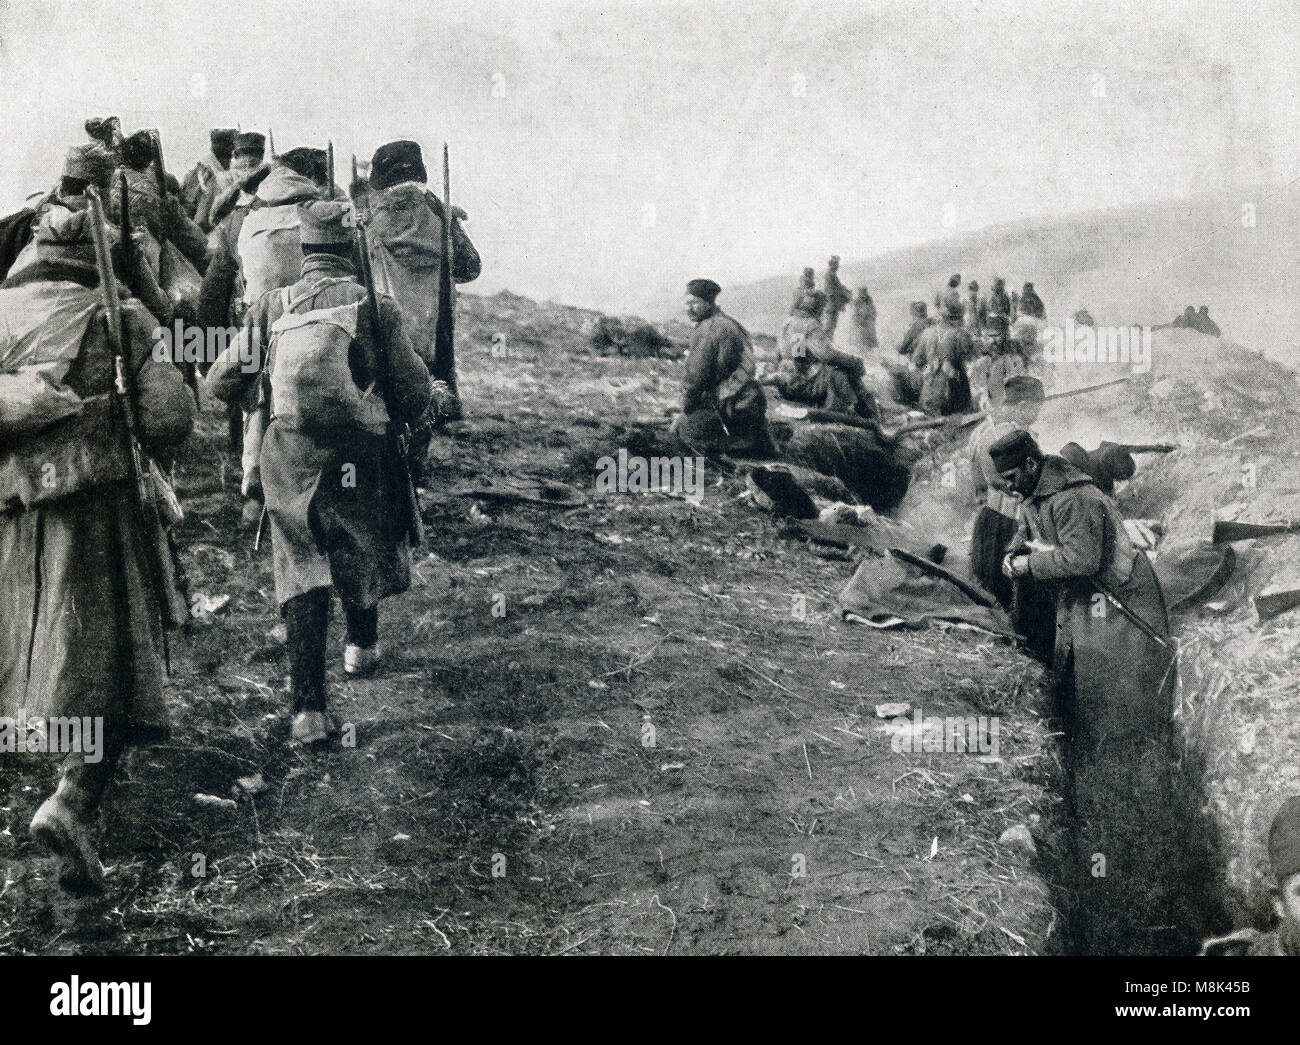 Reinforcements for a hard pressed line. A detachment of troops rushed up to help their comrades hold certain trenches - Stock Image